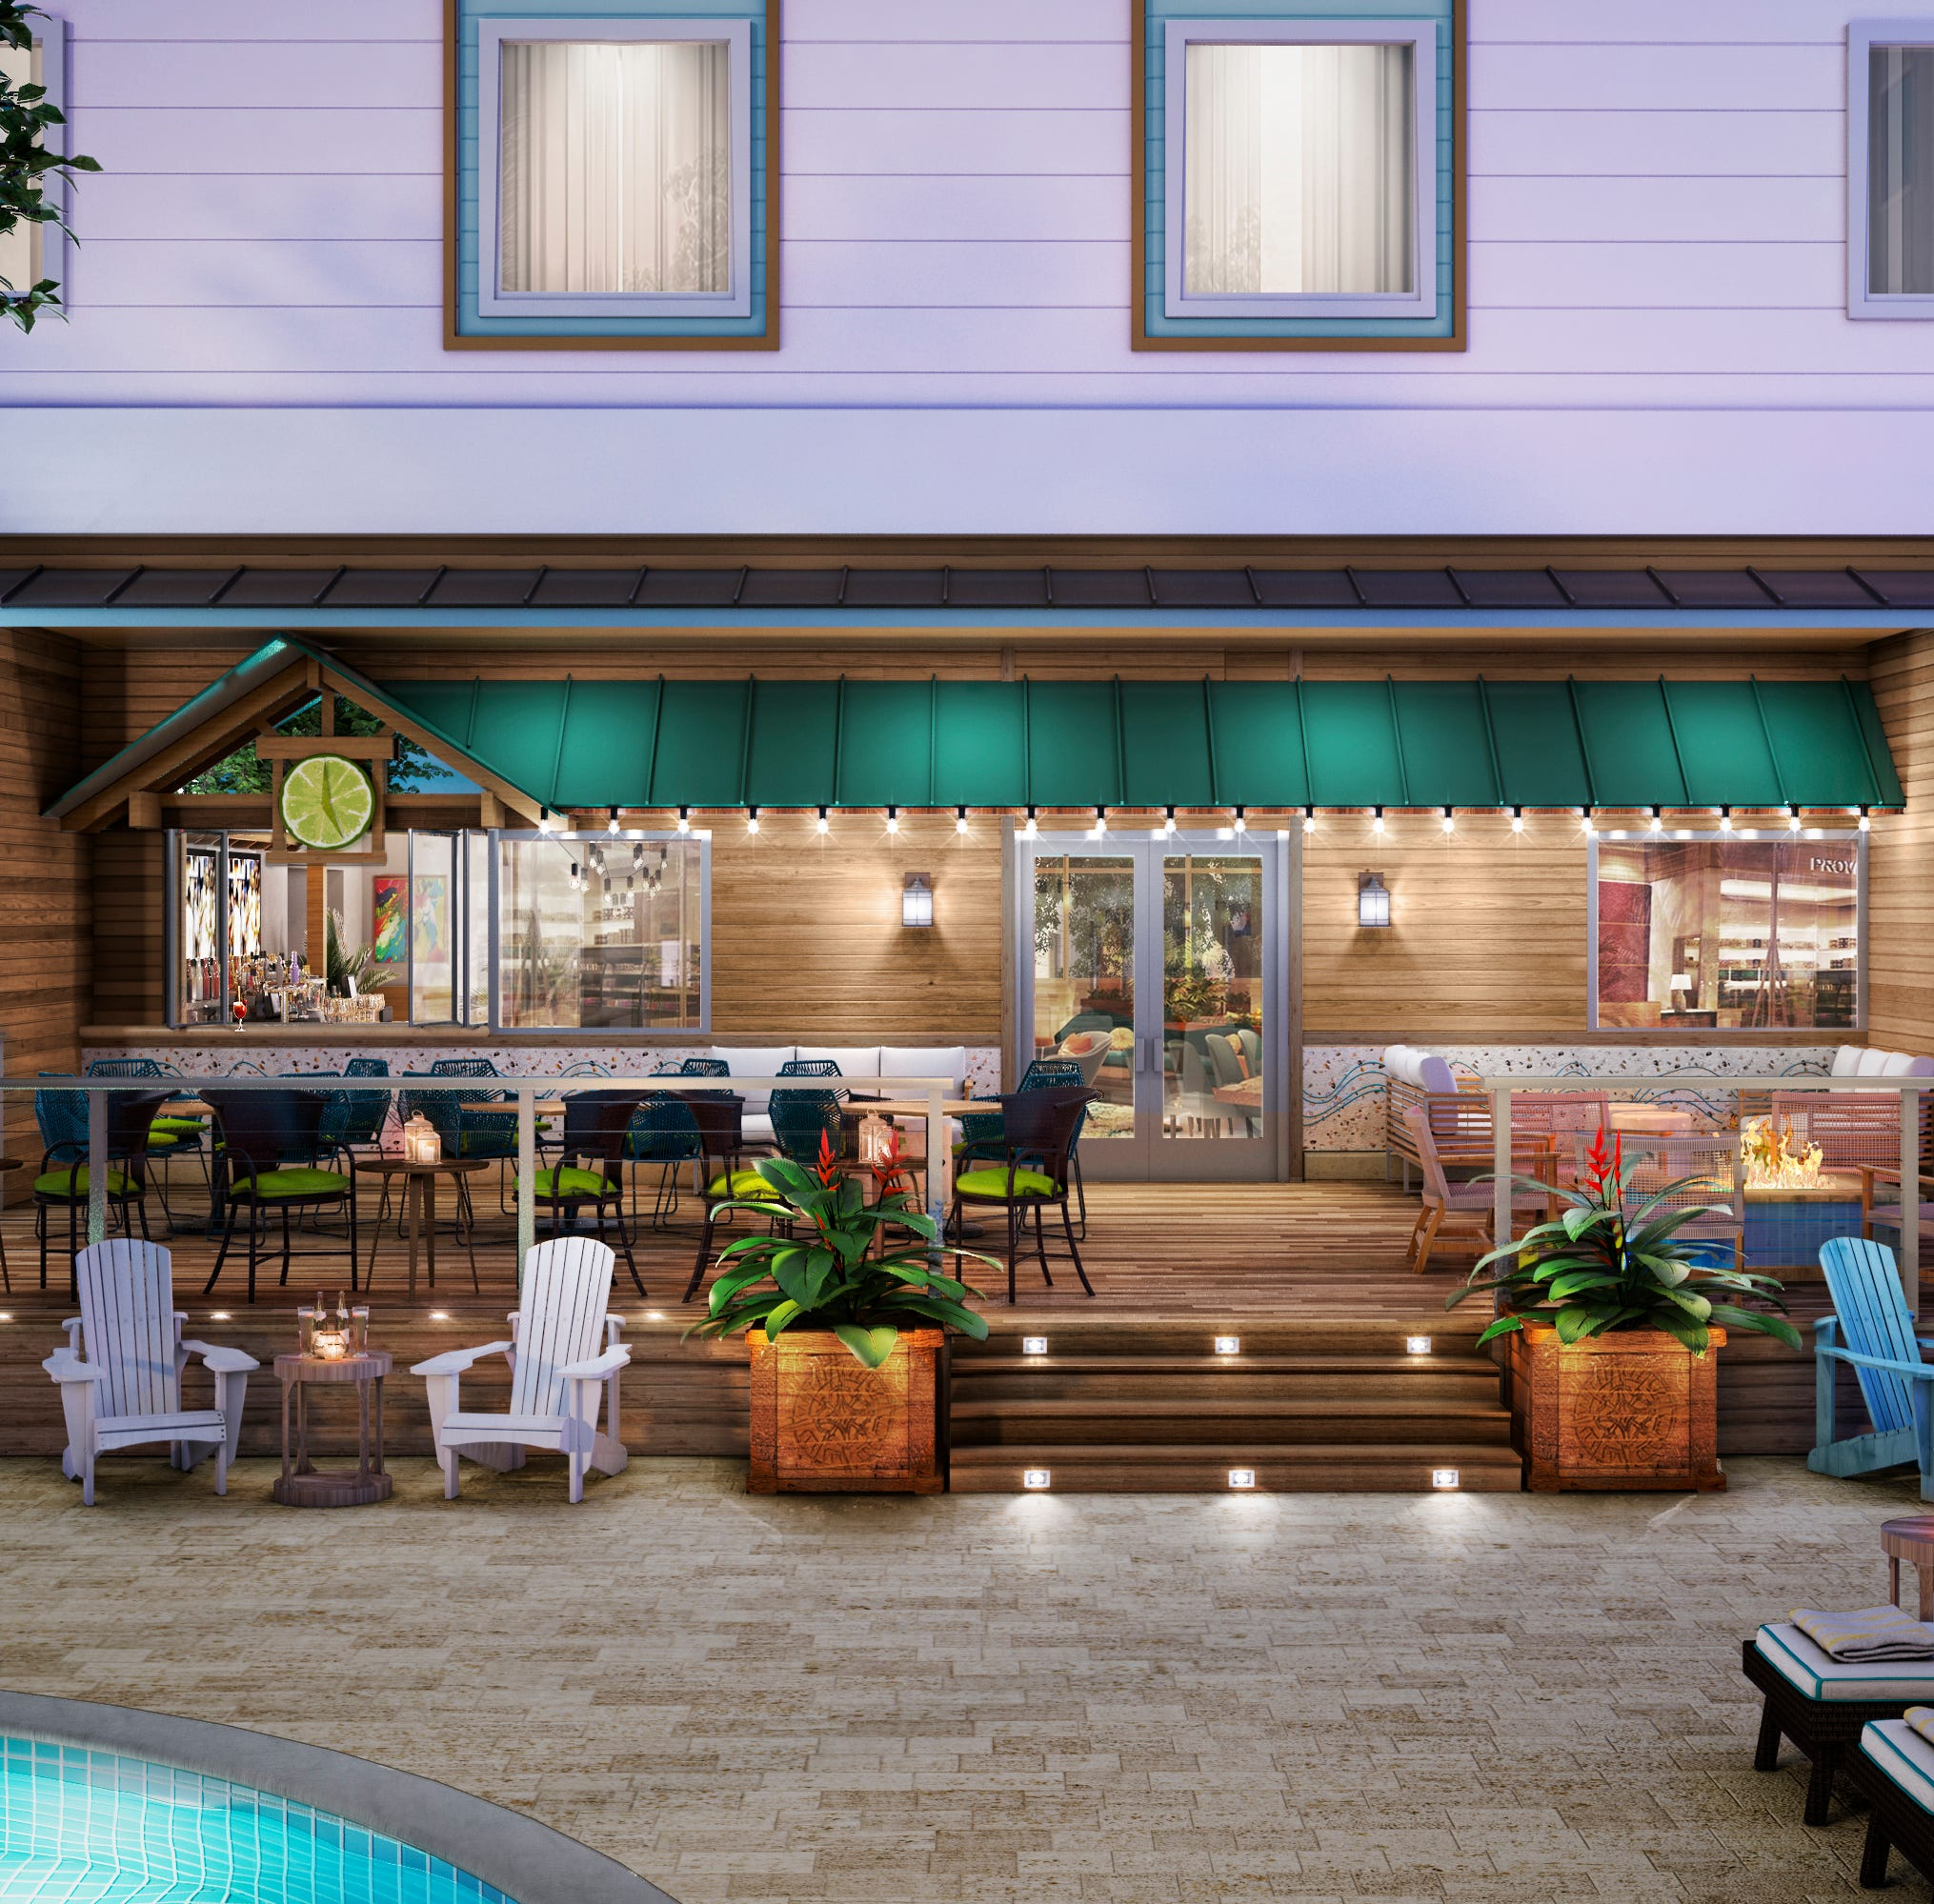 Margaritaville is coming to Louisville with this Jimmy Buffett-inspired hotel